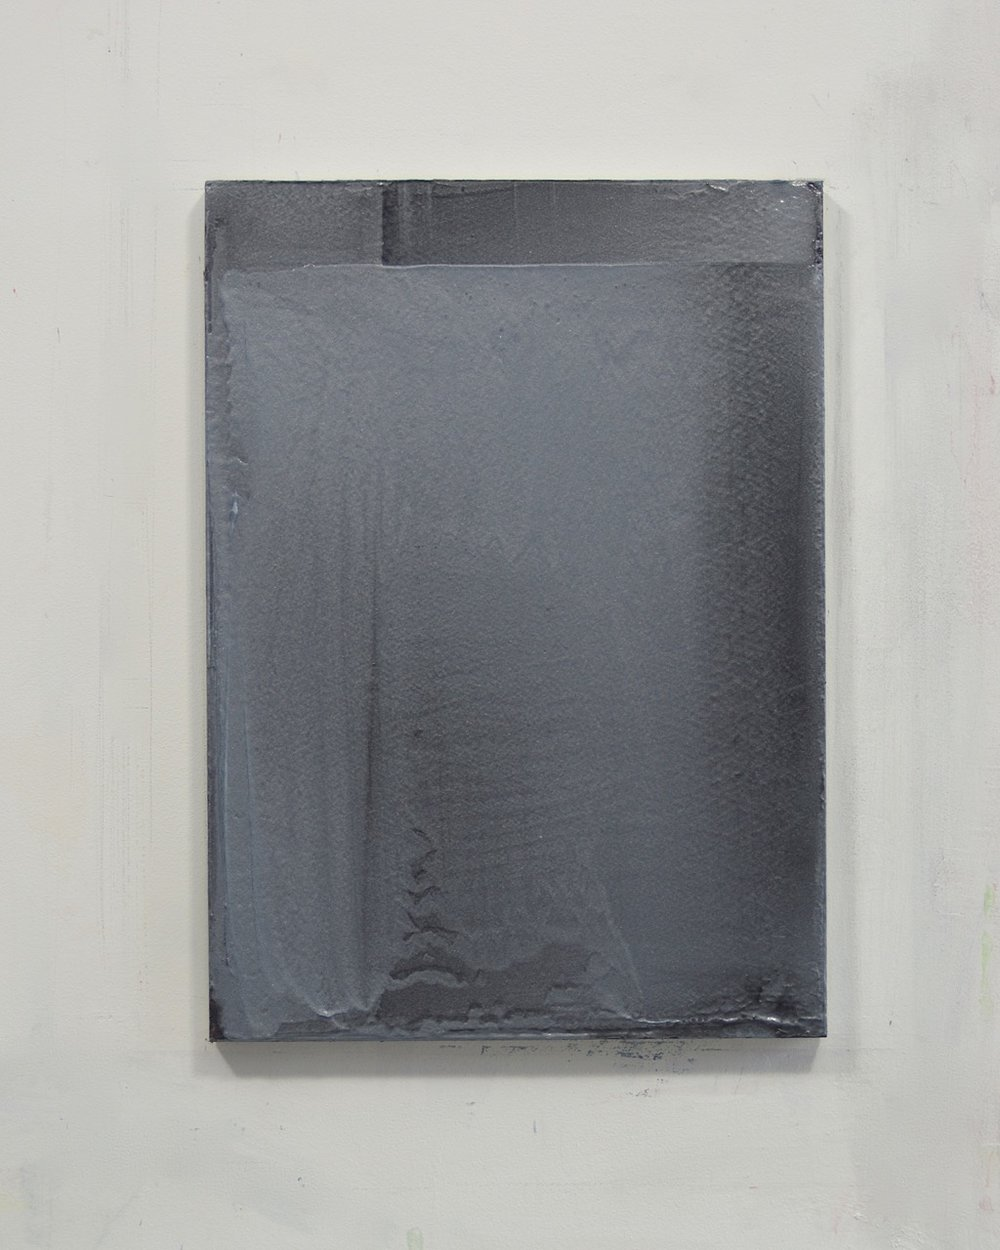 milori blue with aluminum, 2013, 42x33cm.jpg